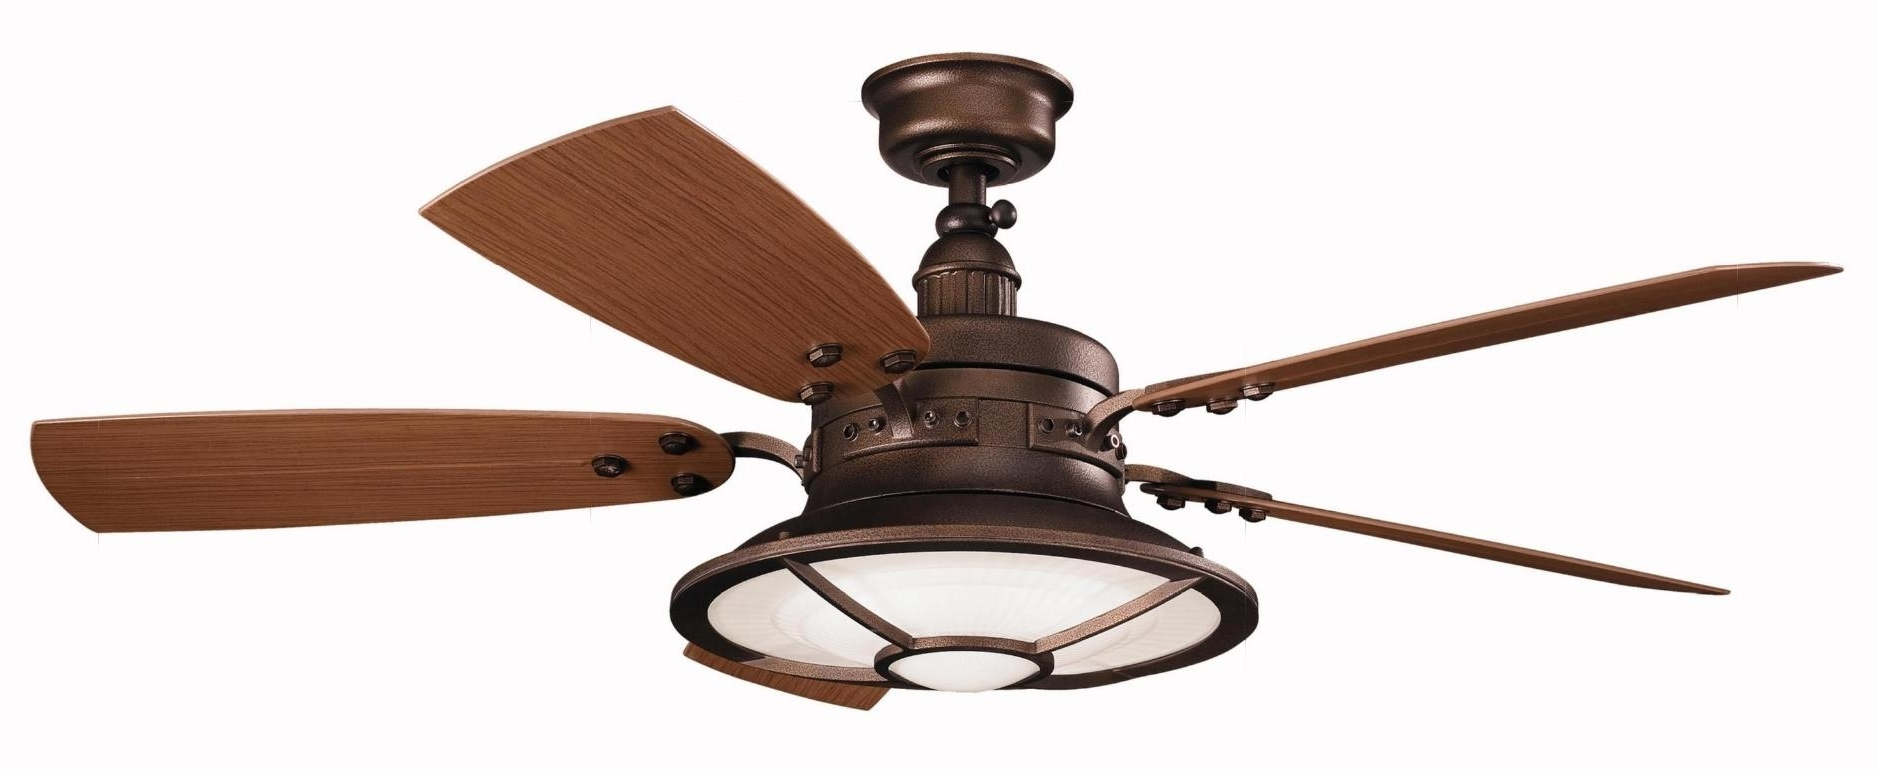 Most Current Kichler Outdoor Ceiling Fans With Lights Within Light : Kichler Fan Led Lighting Ceiling Fans Waterproof Outdoor (View 9 of 20)